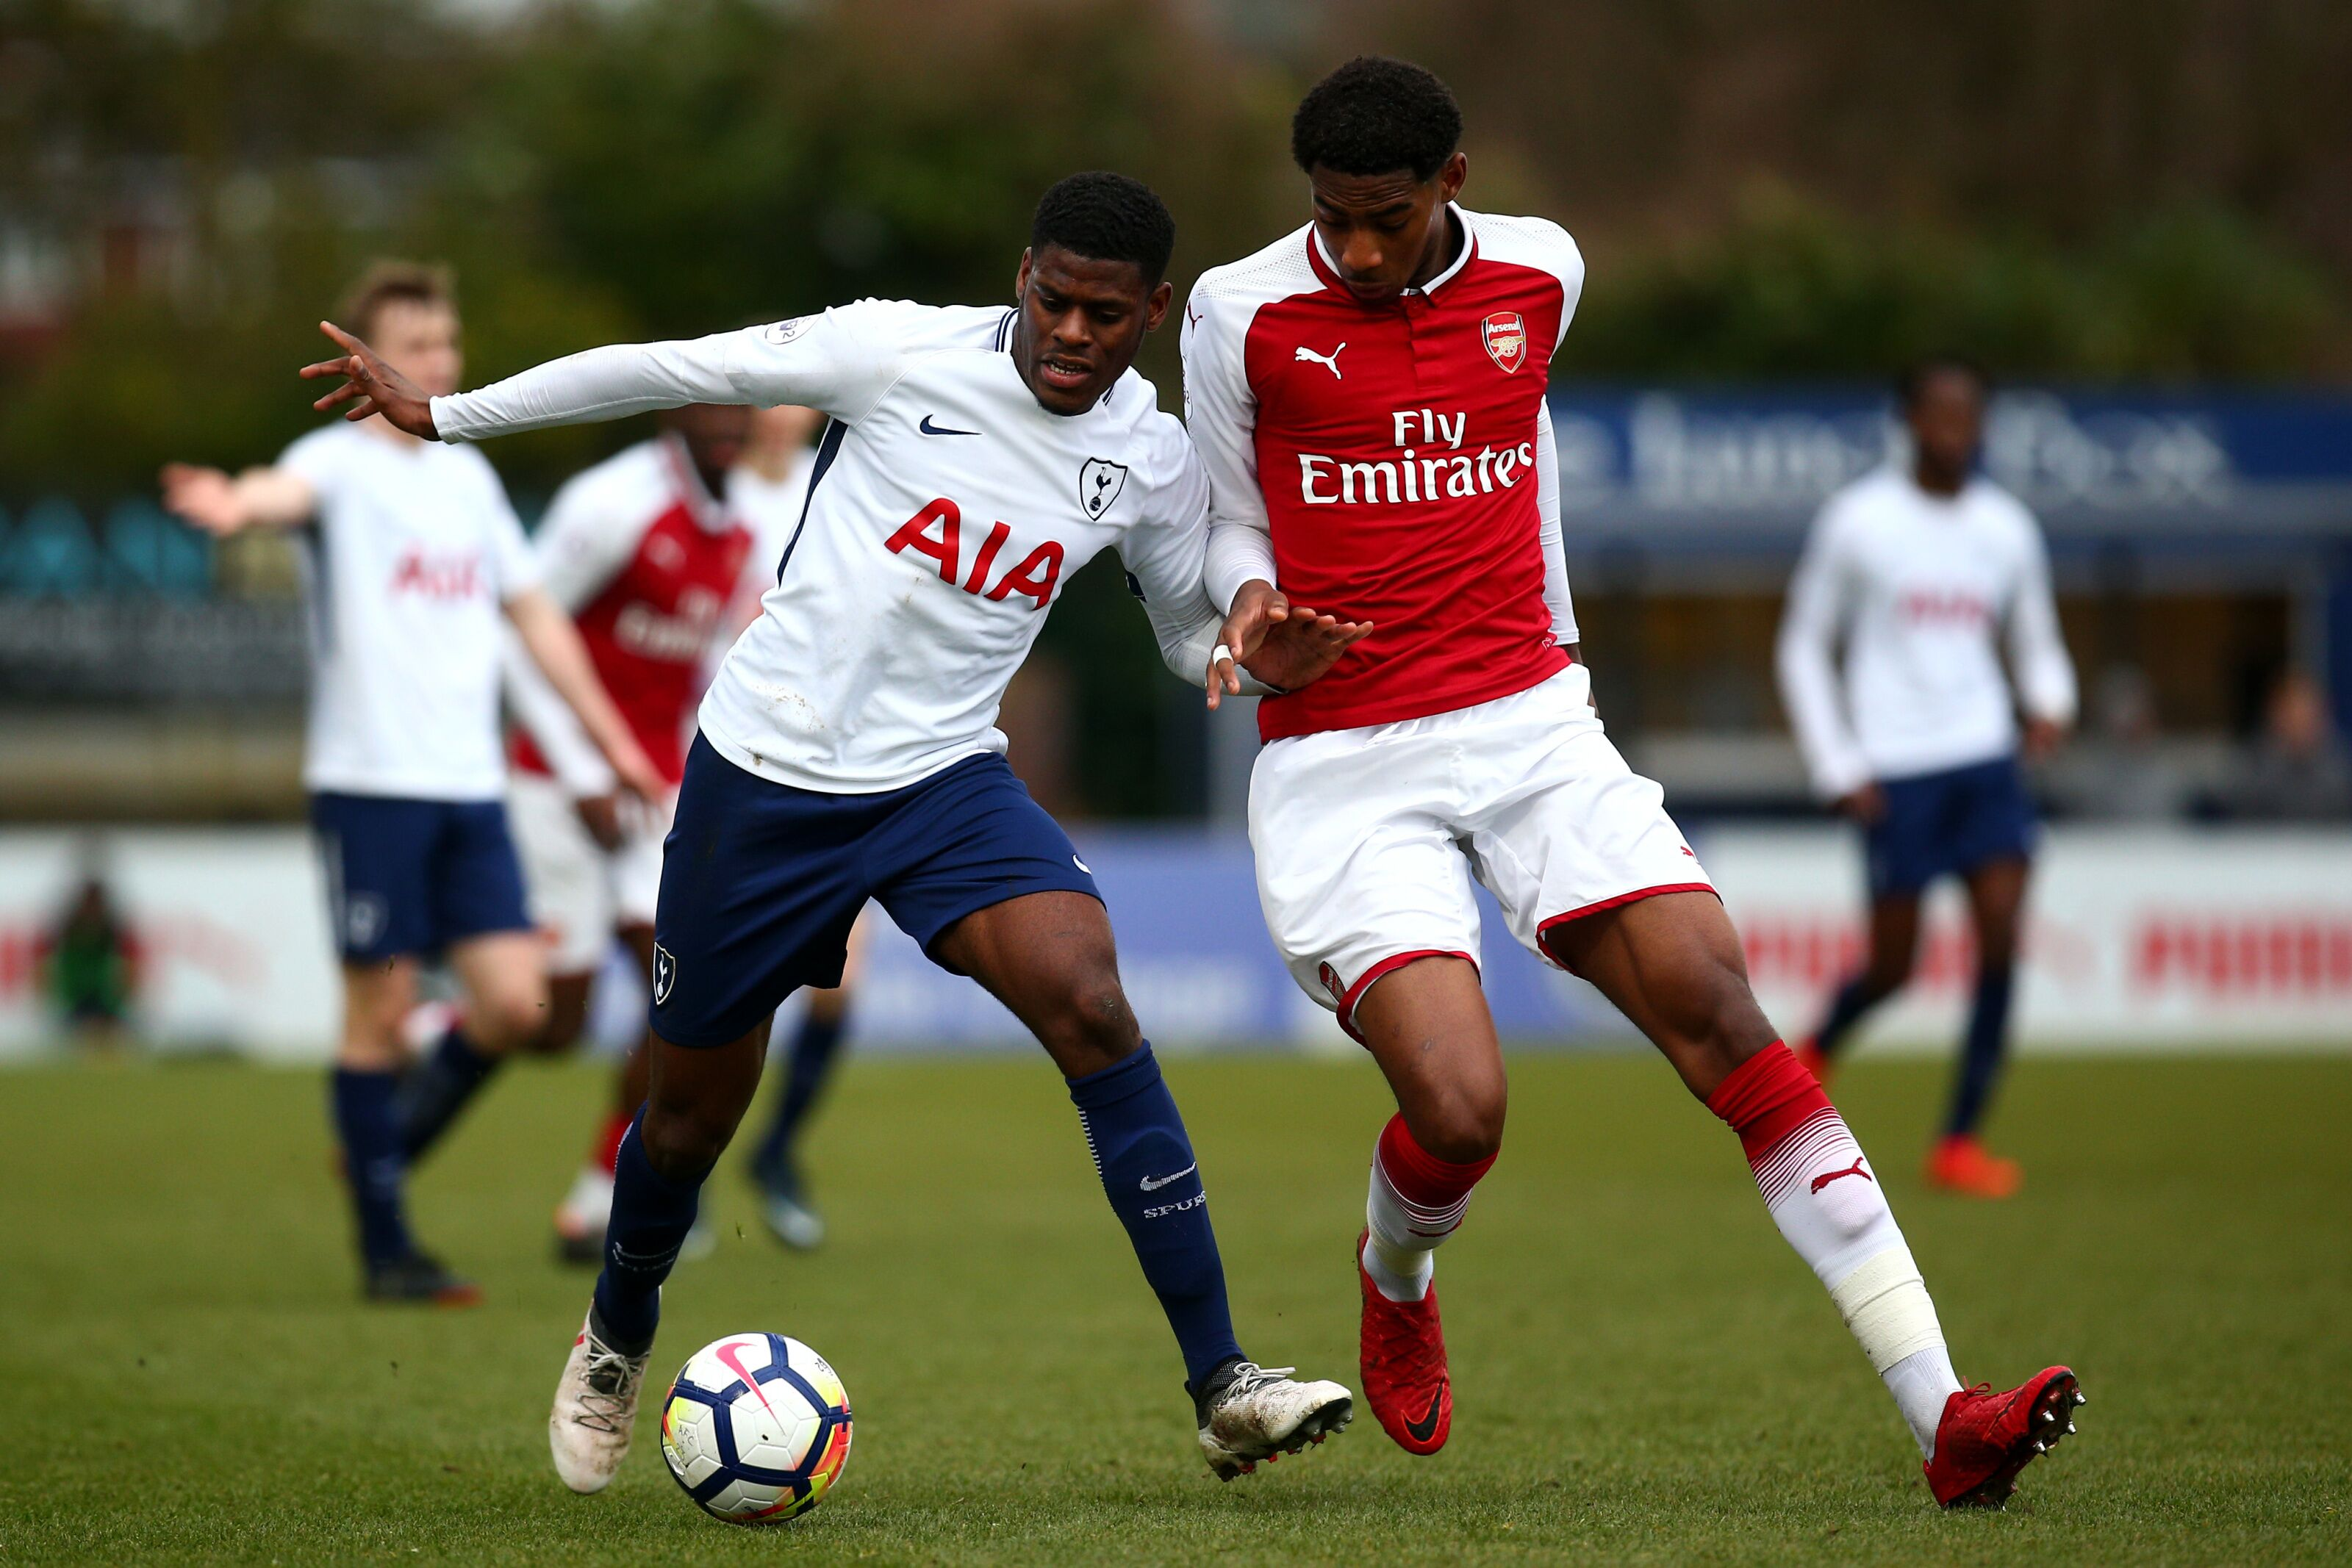 Arsenal: Is it too early to talk about more Zech Medley? - FanSided